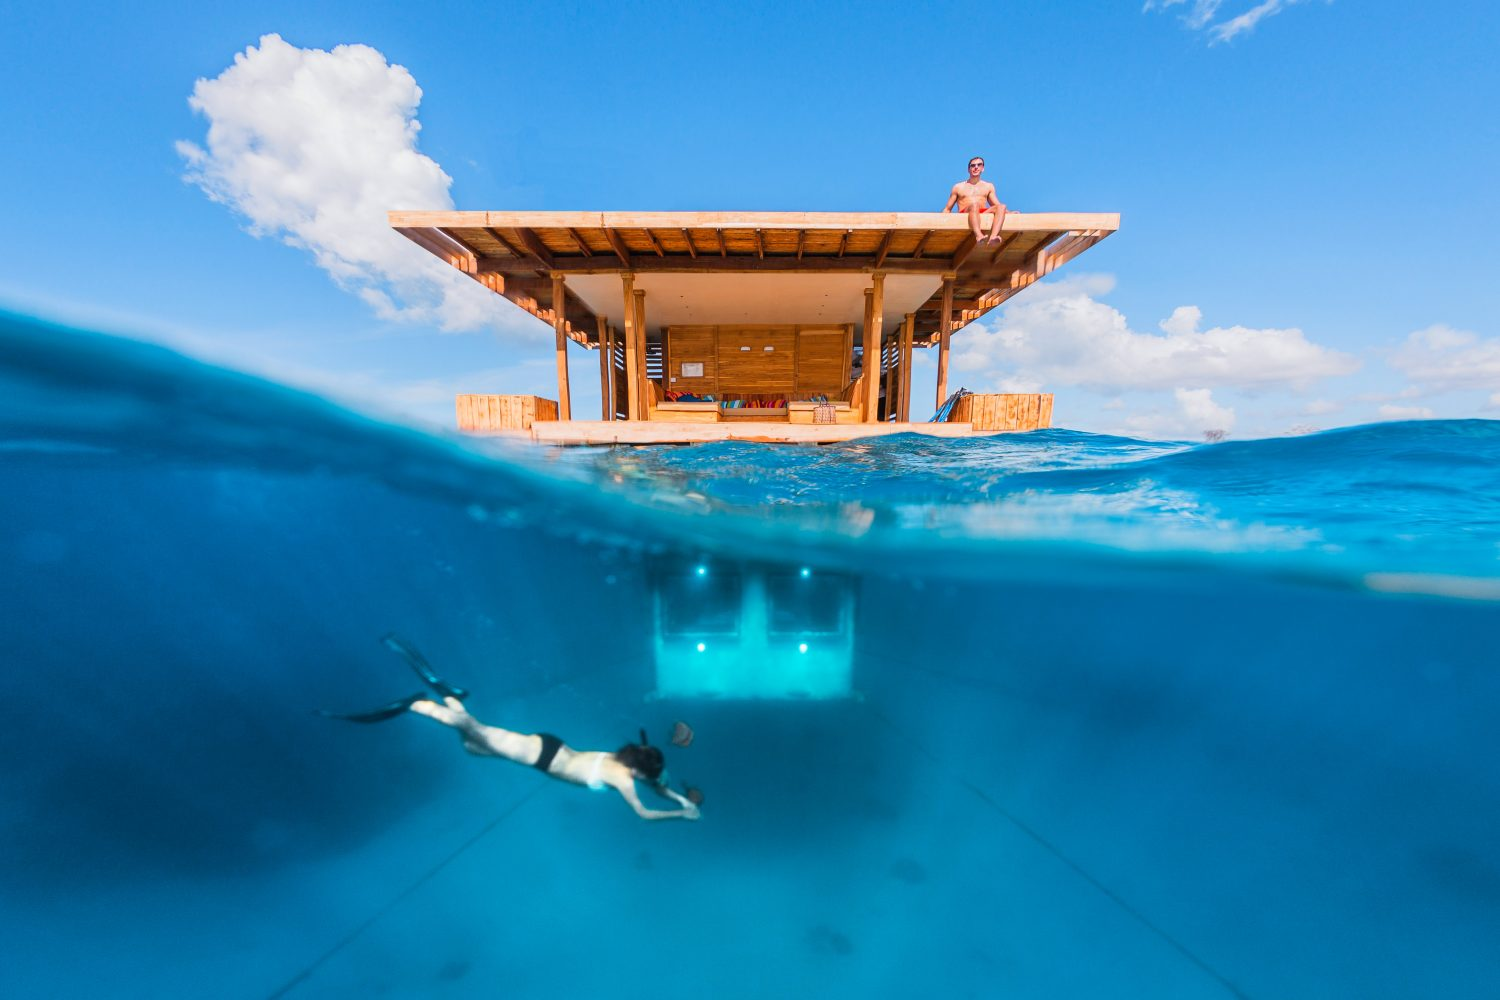 An unusual hotel room – Manta Resort Pemba, Tanzania